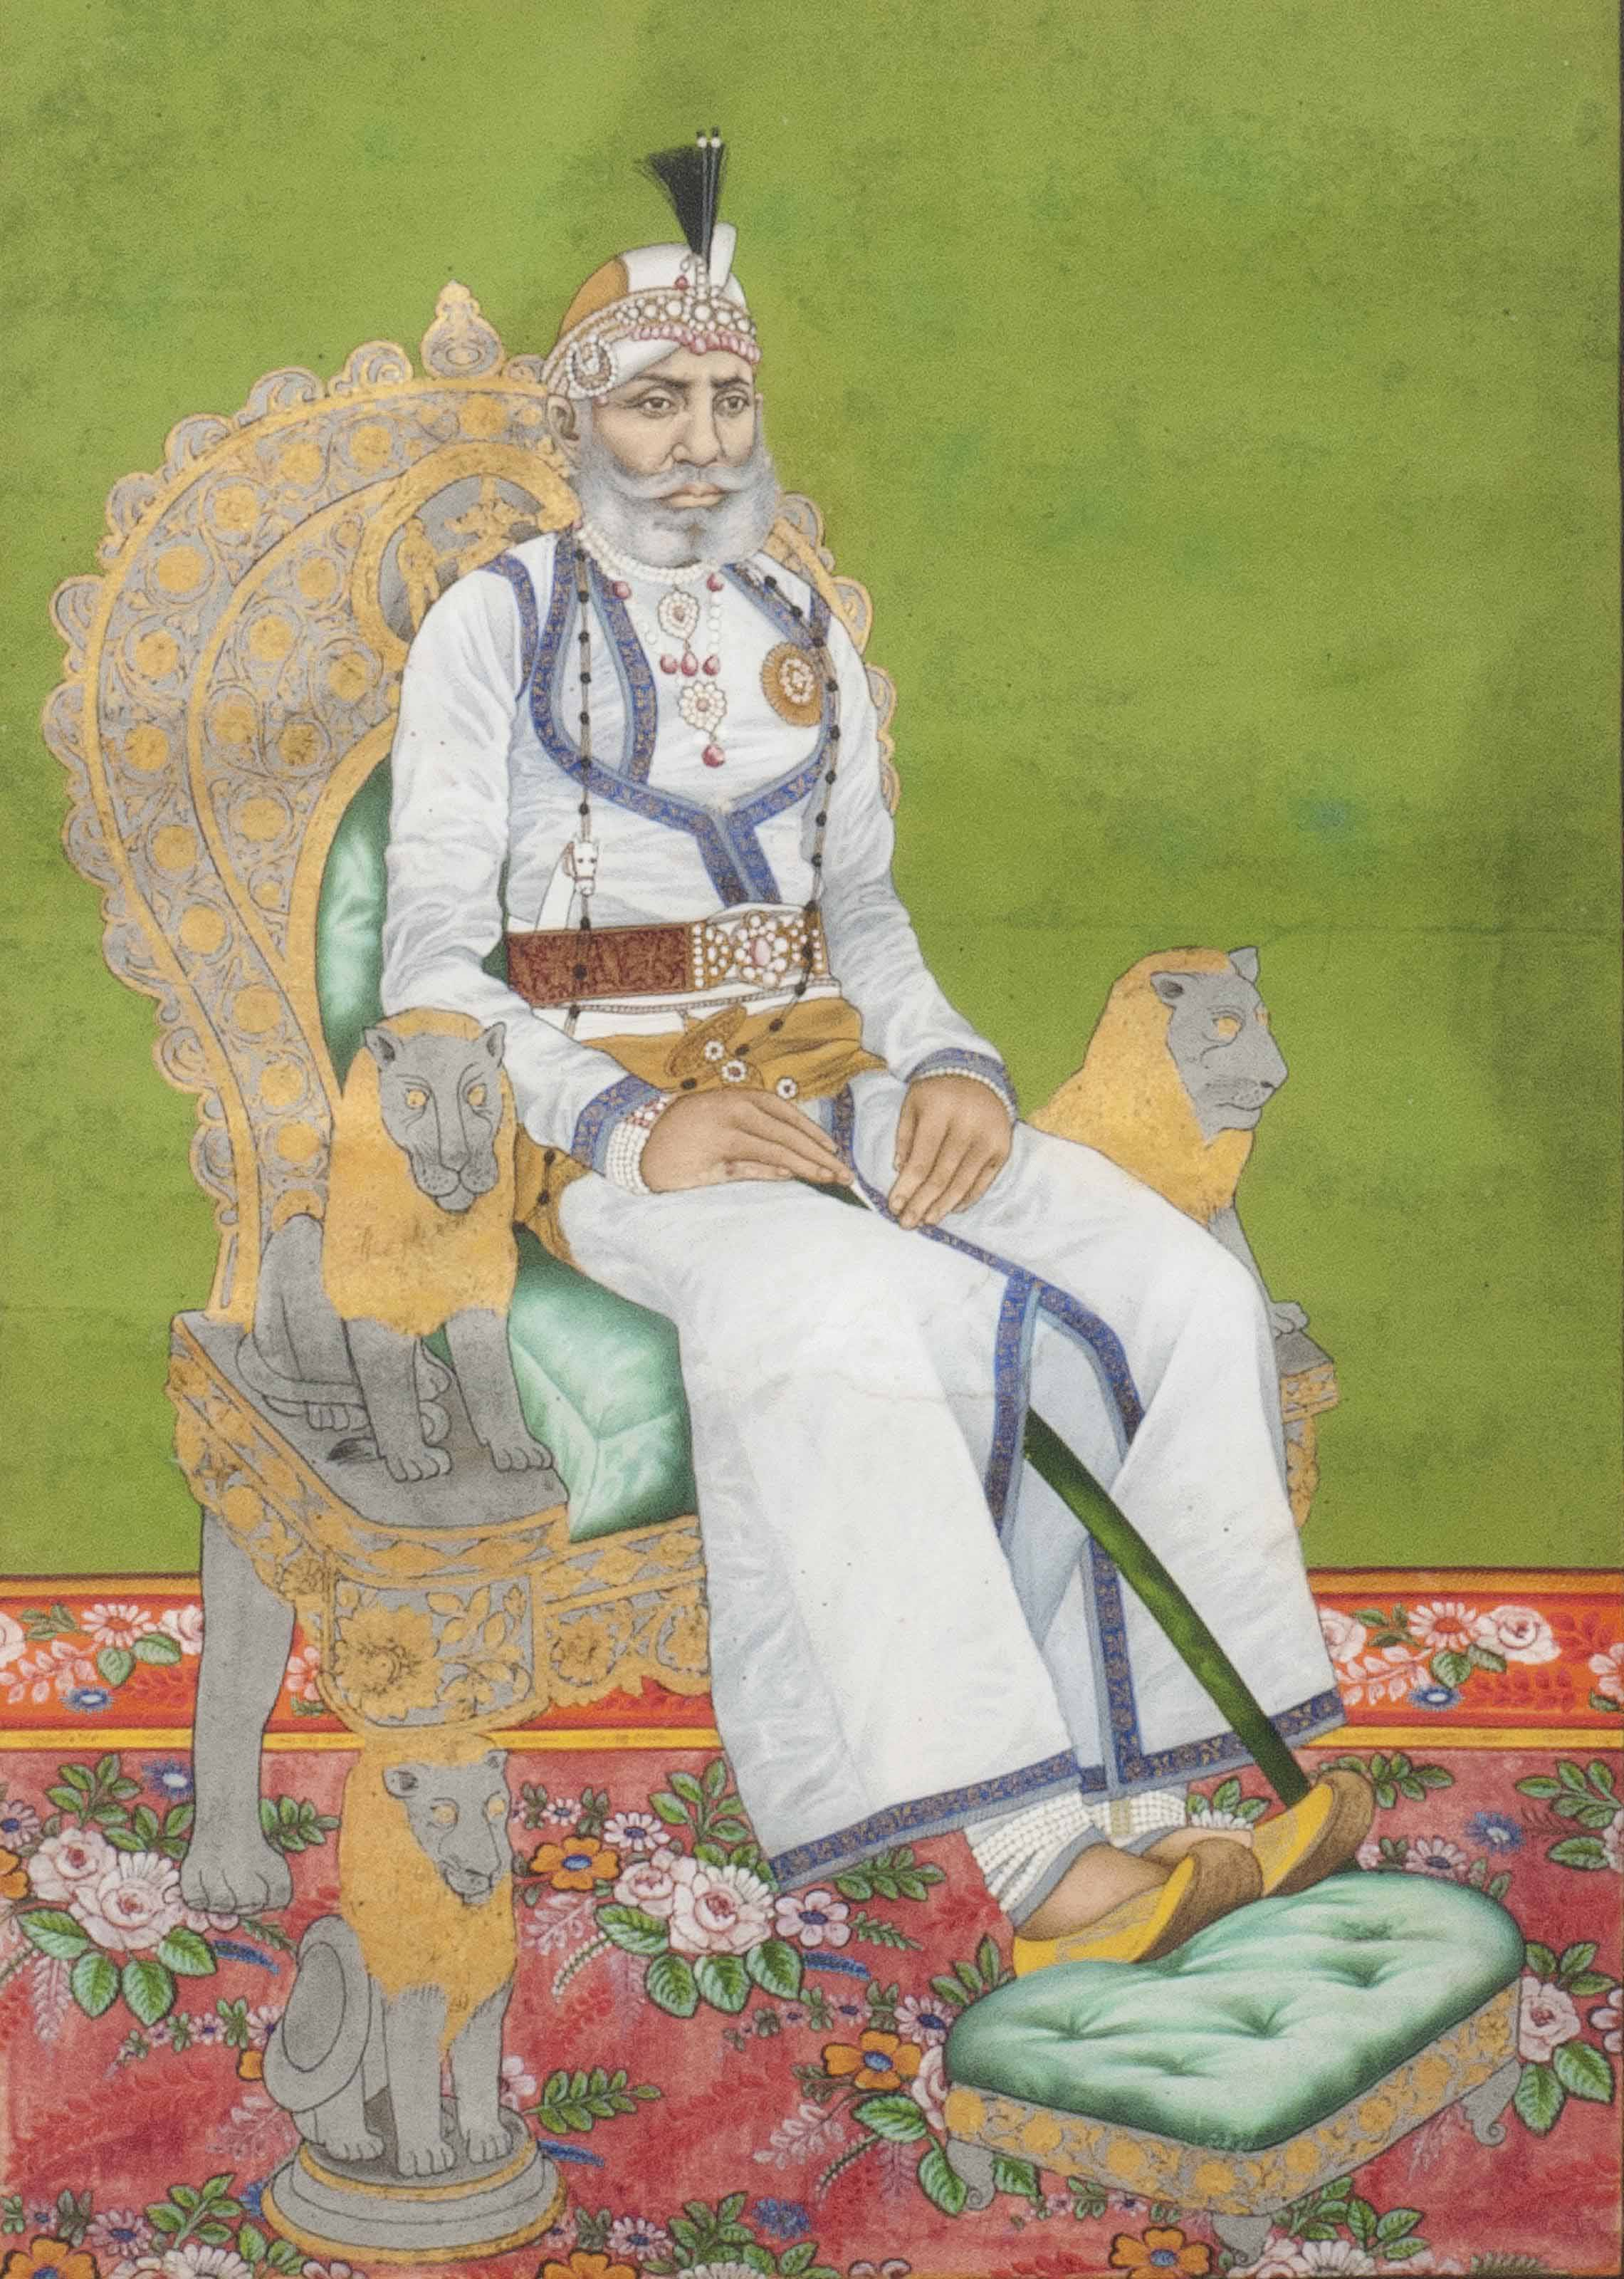 PORTRAIT OF A SEATED RULER